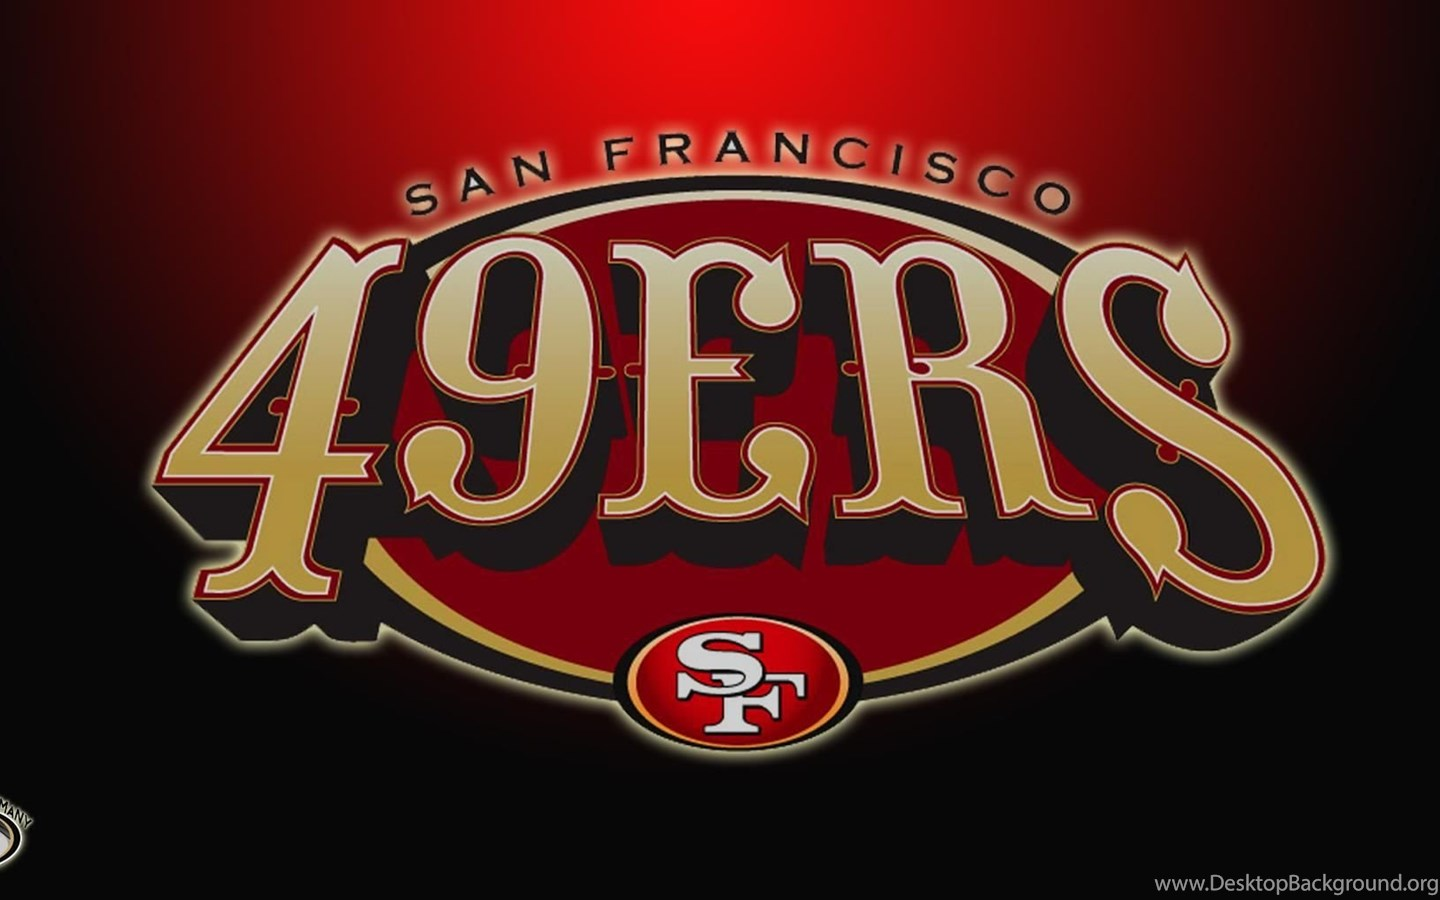 San Francisco Forty Niners 49ers Wallpapers Hd Free Download Desktop Background